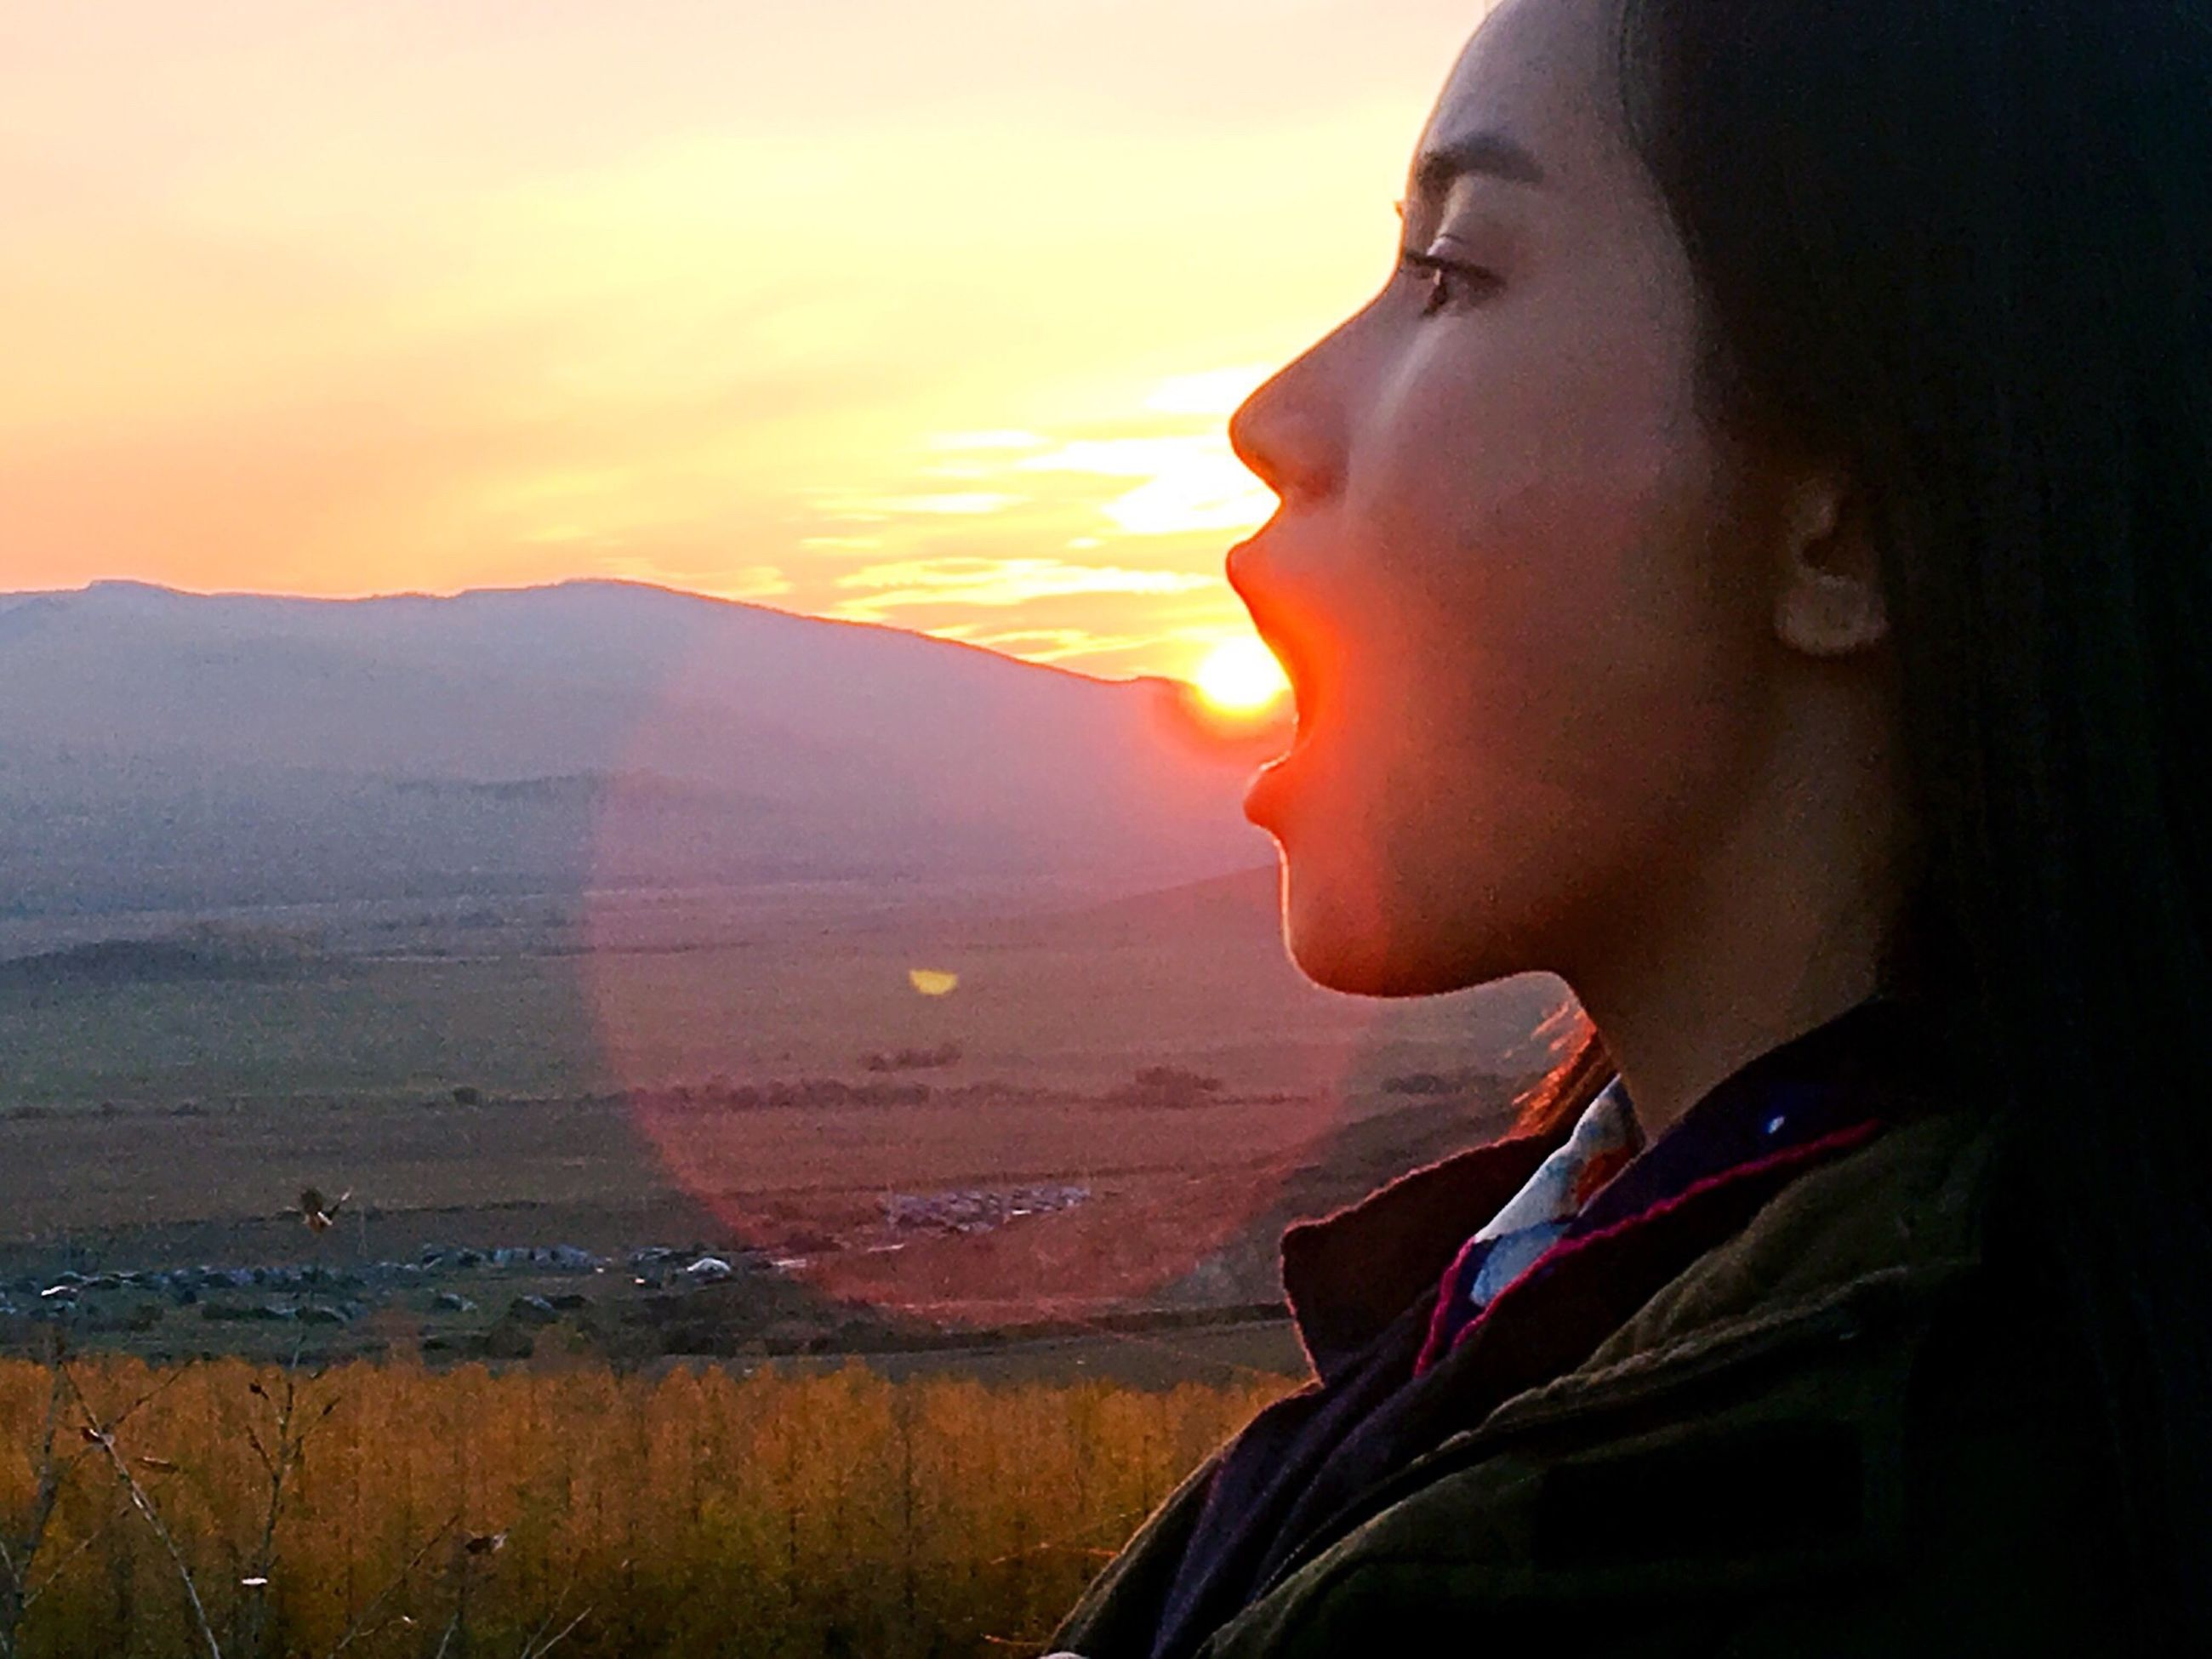 sunset, lifestyles, headshot, sky, leisure activity, young adult, orange color, sunlight, close-up, scenics, water, mountain, sun, contemplation, tranquil scene, person, tranquility, sunbeam, sea, beauty in nature, cloud - sky, outdoors, nature, journey